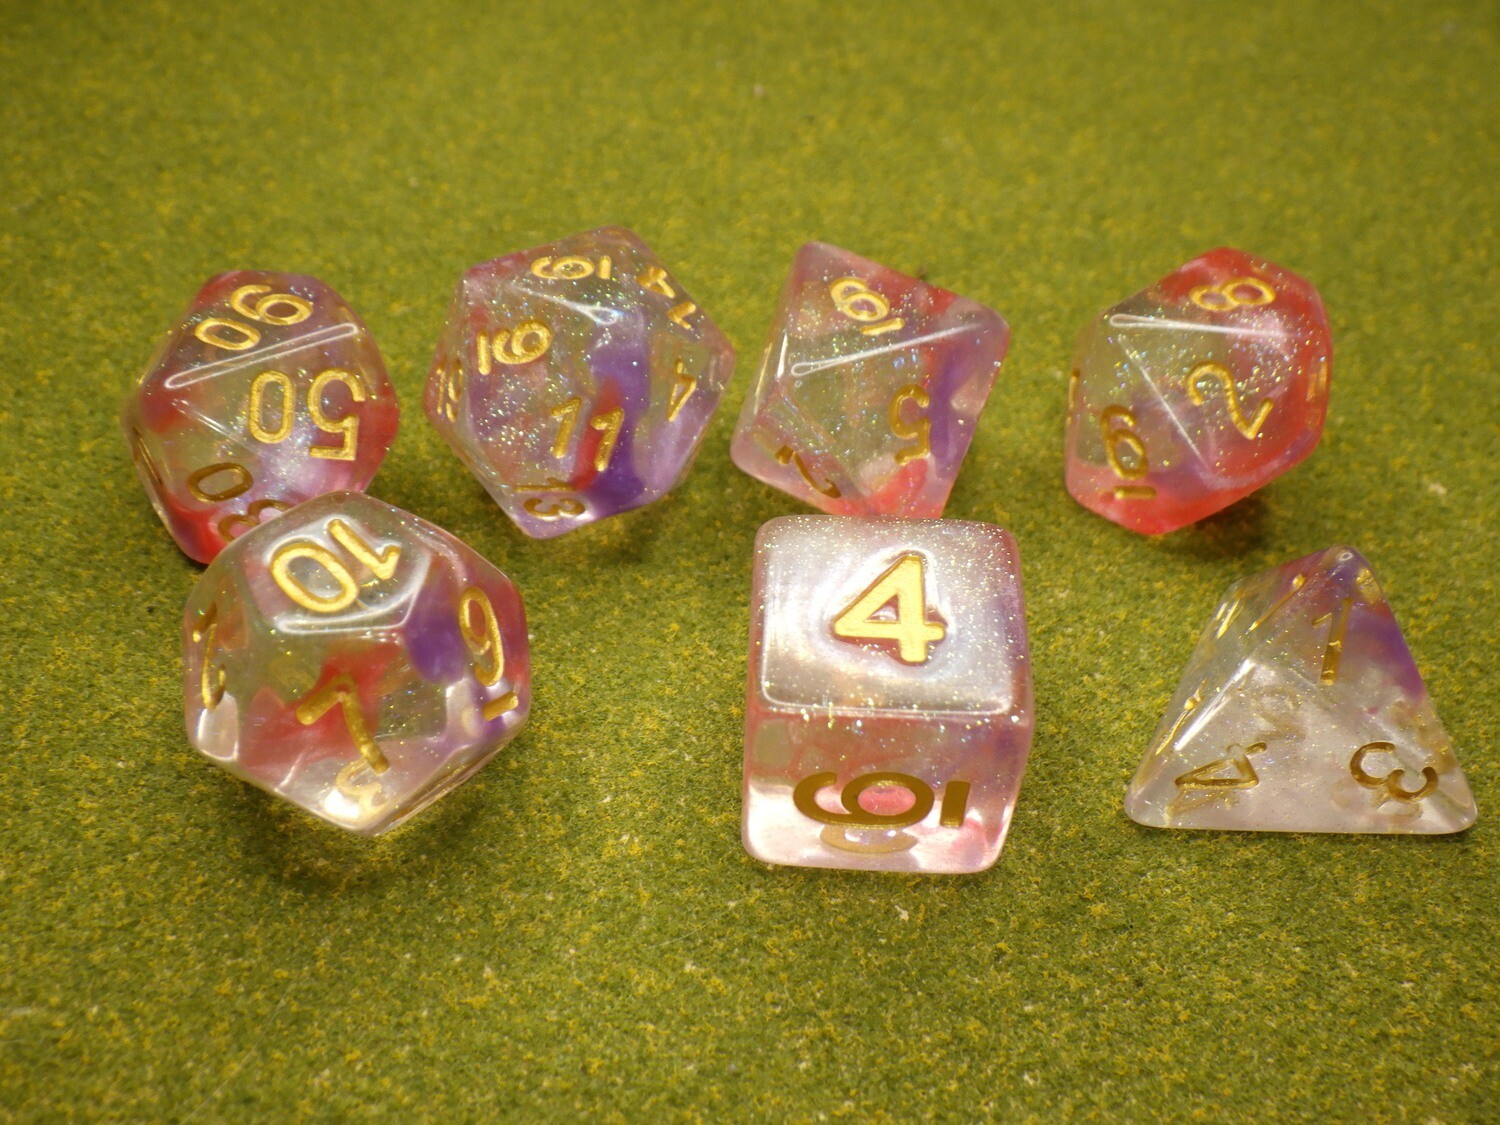 Luminous Ruby 16mm Polyhedral 7 Dice Set Tabletop RPG CCG Board Games Counter Token Markers Decision Makers Roll Dungeon Pathfinder